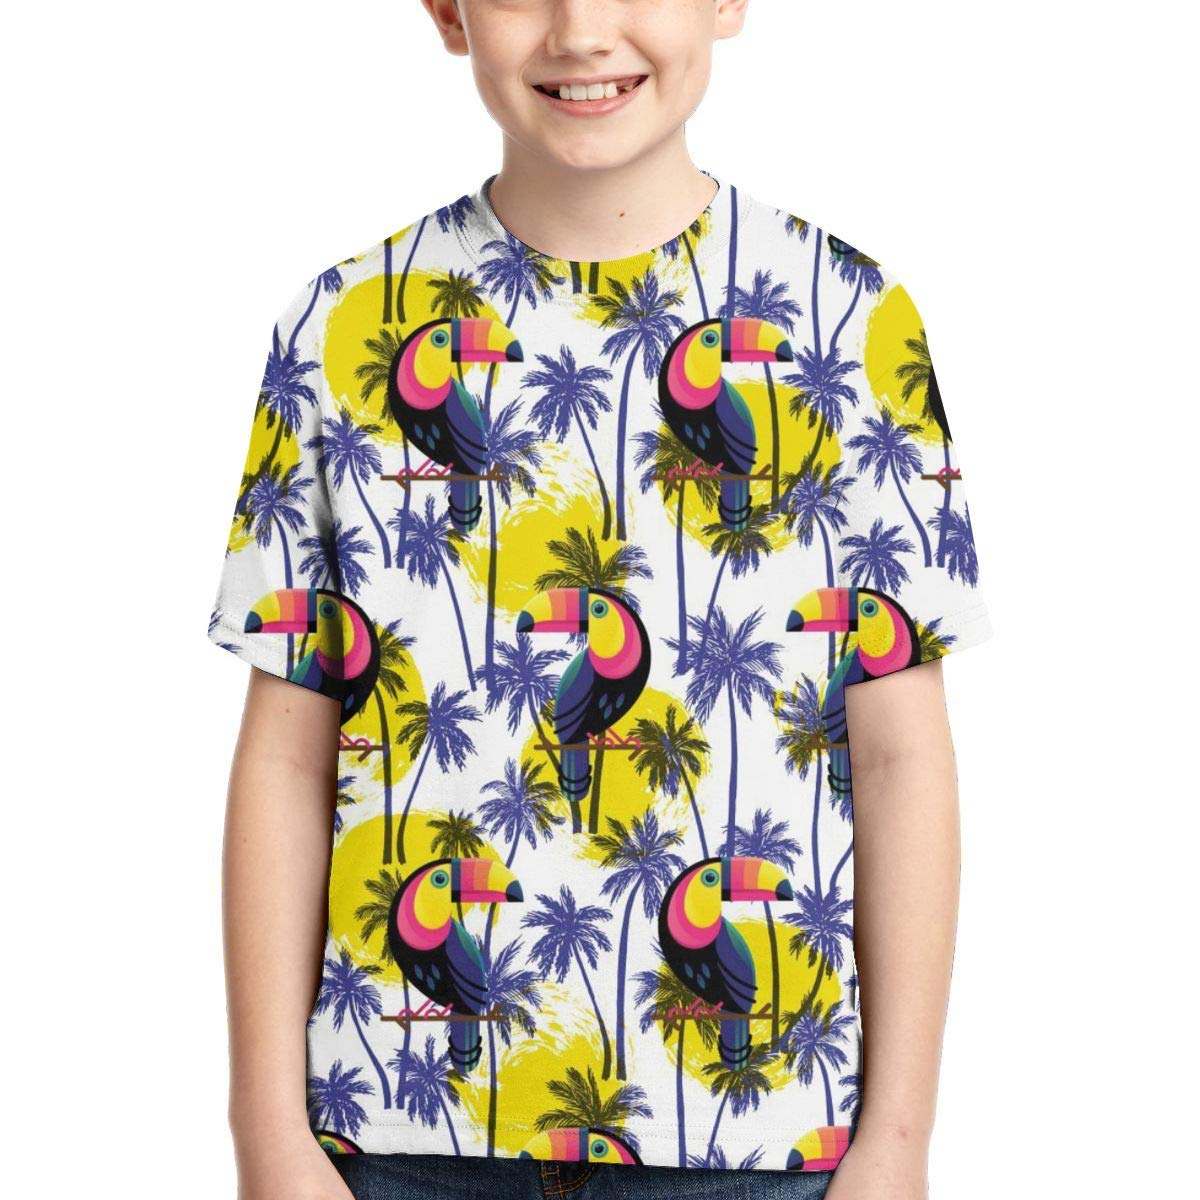 HHTZTCL Botanical Plam Trees with Toucan Boys Print Graphic Tee Short Sleeve T-Shirt